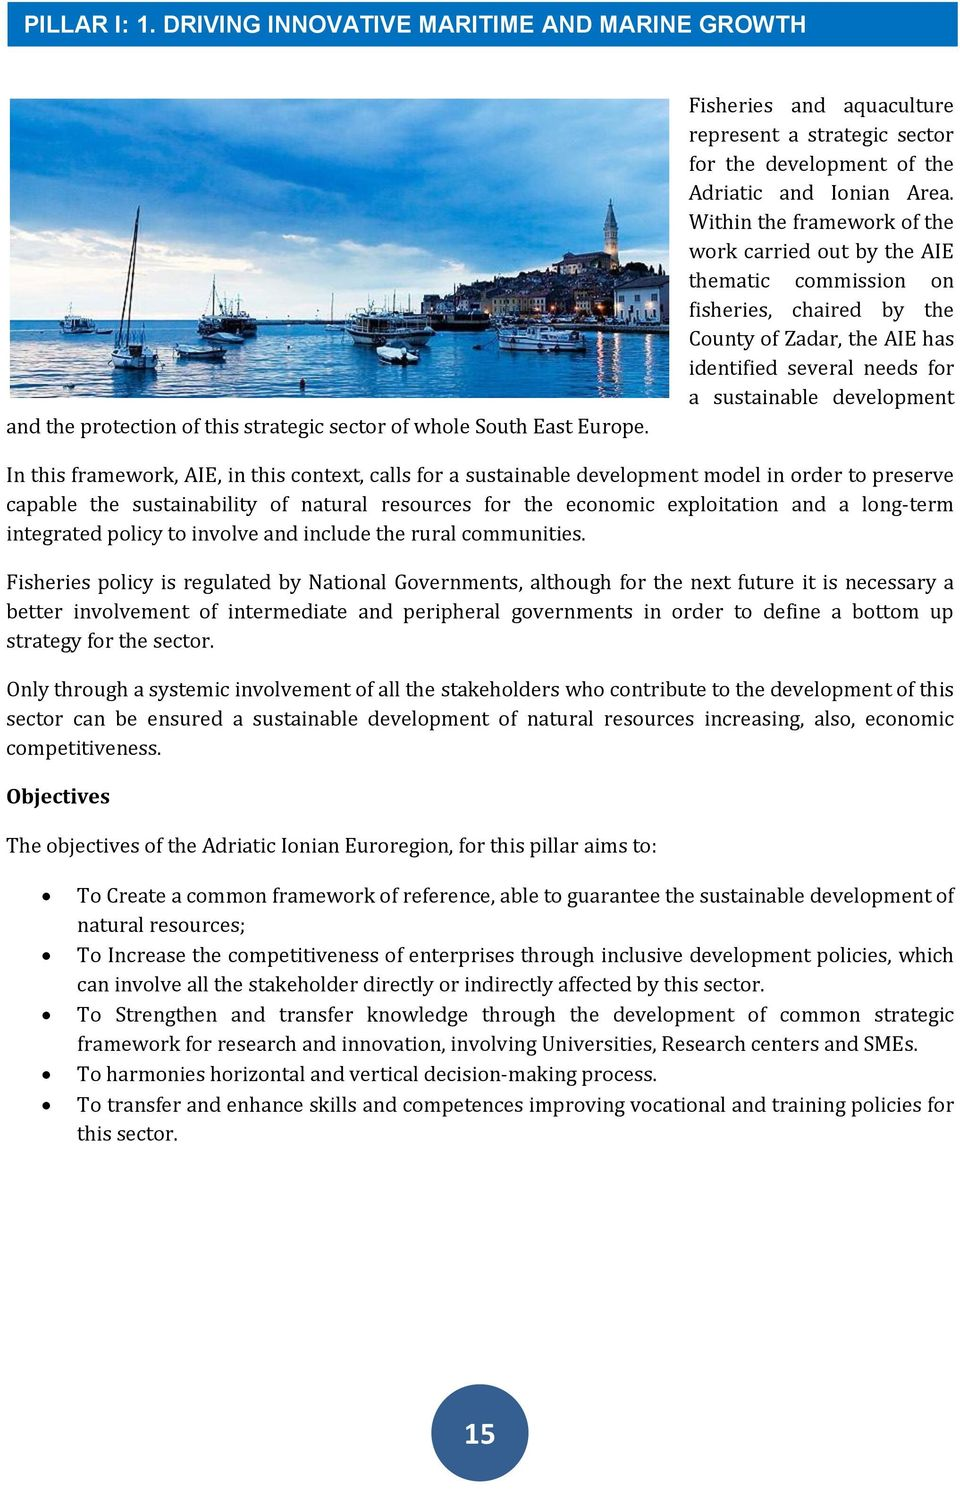 Within the framework of the work carried out by the AIE thematic commission on fisheries, chaired by the County of Zadar, the AIE has identified several needs for a sustainable development In this